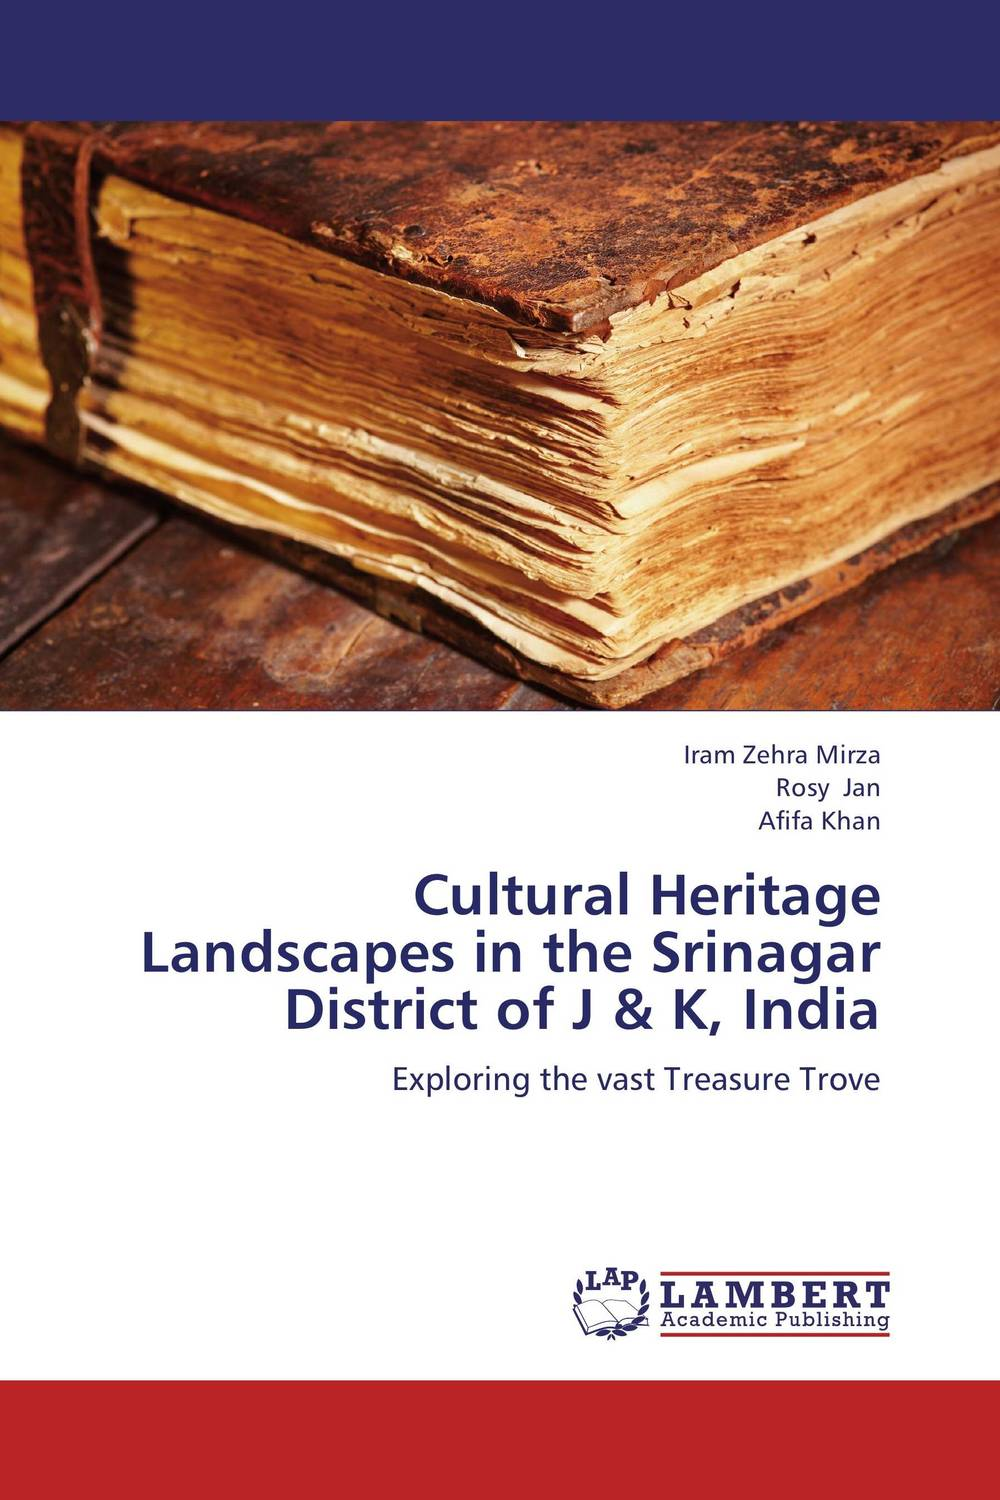 Cultural Heritage Landscapes in the Srinagar District of J & K, India alice a007j br